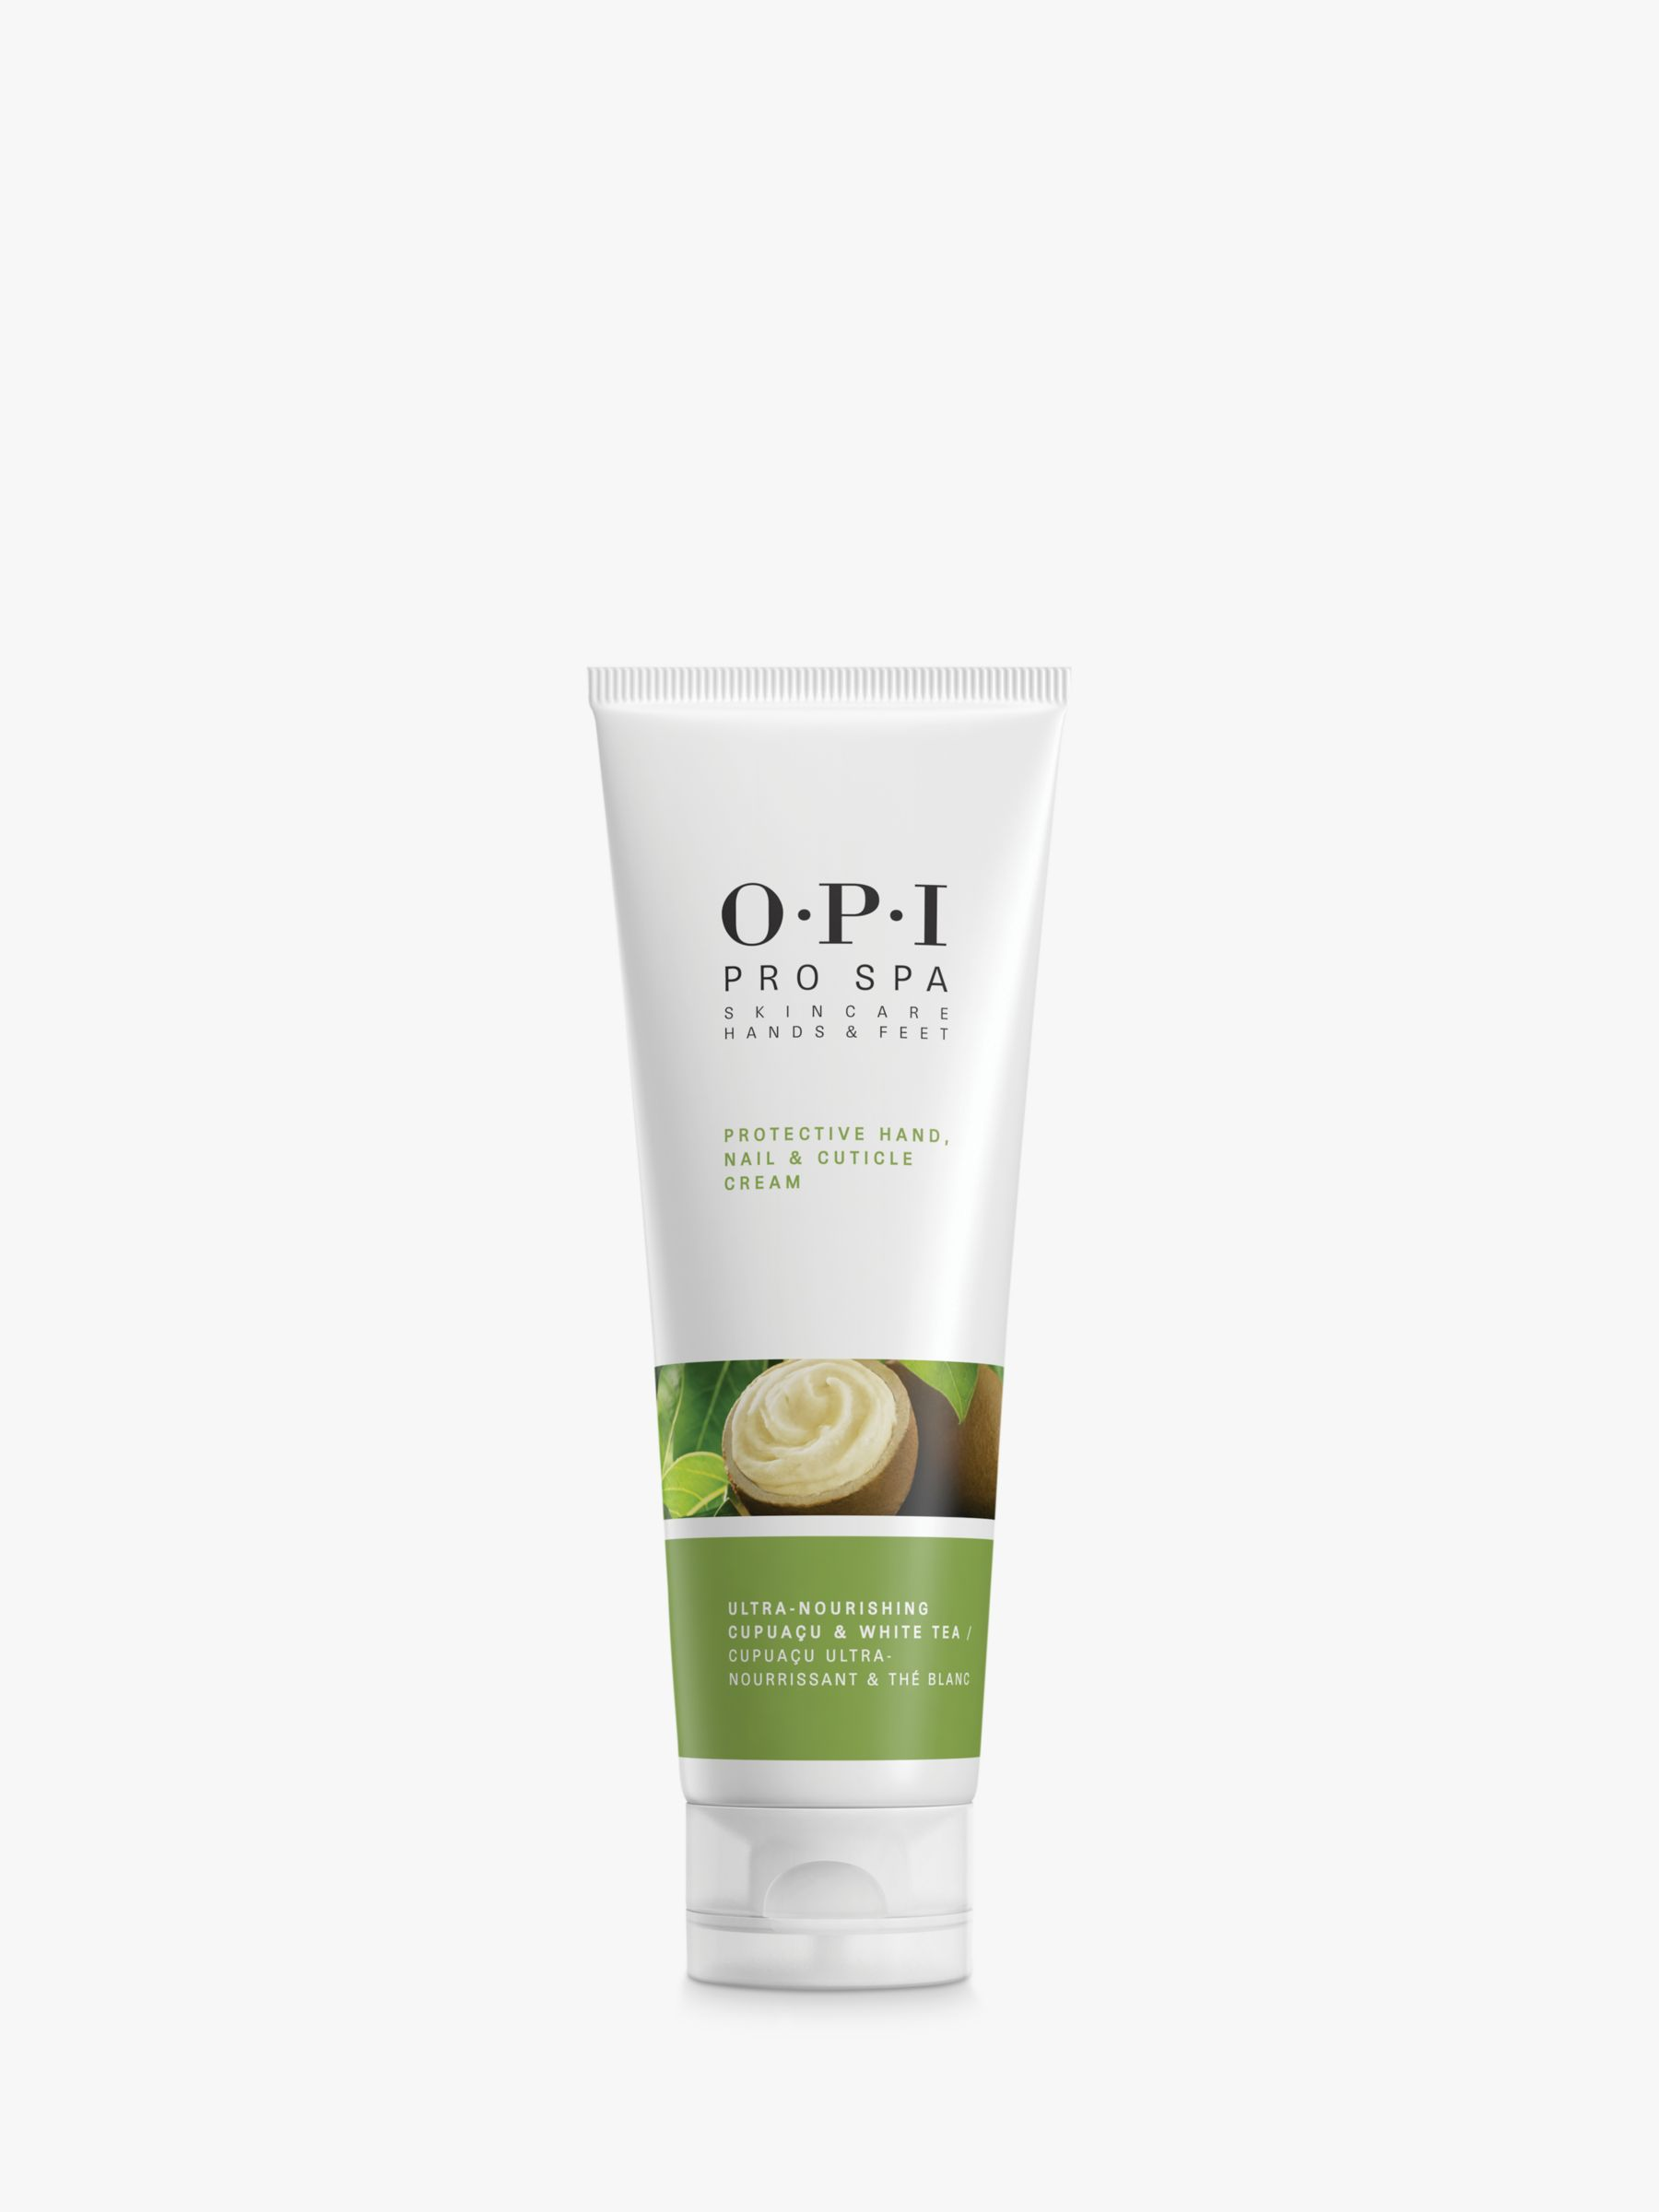 OPI OPI Pro Spa Protective Hand, Nail & Cuticle Cream, 118ml